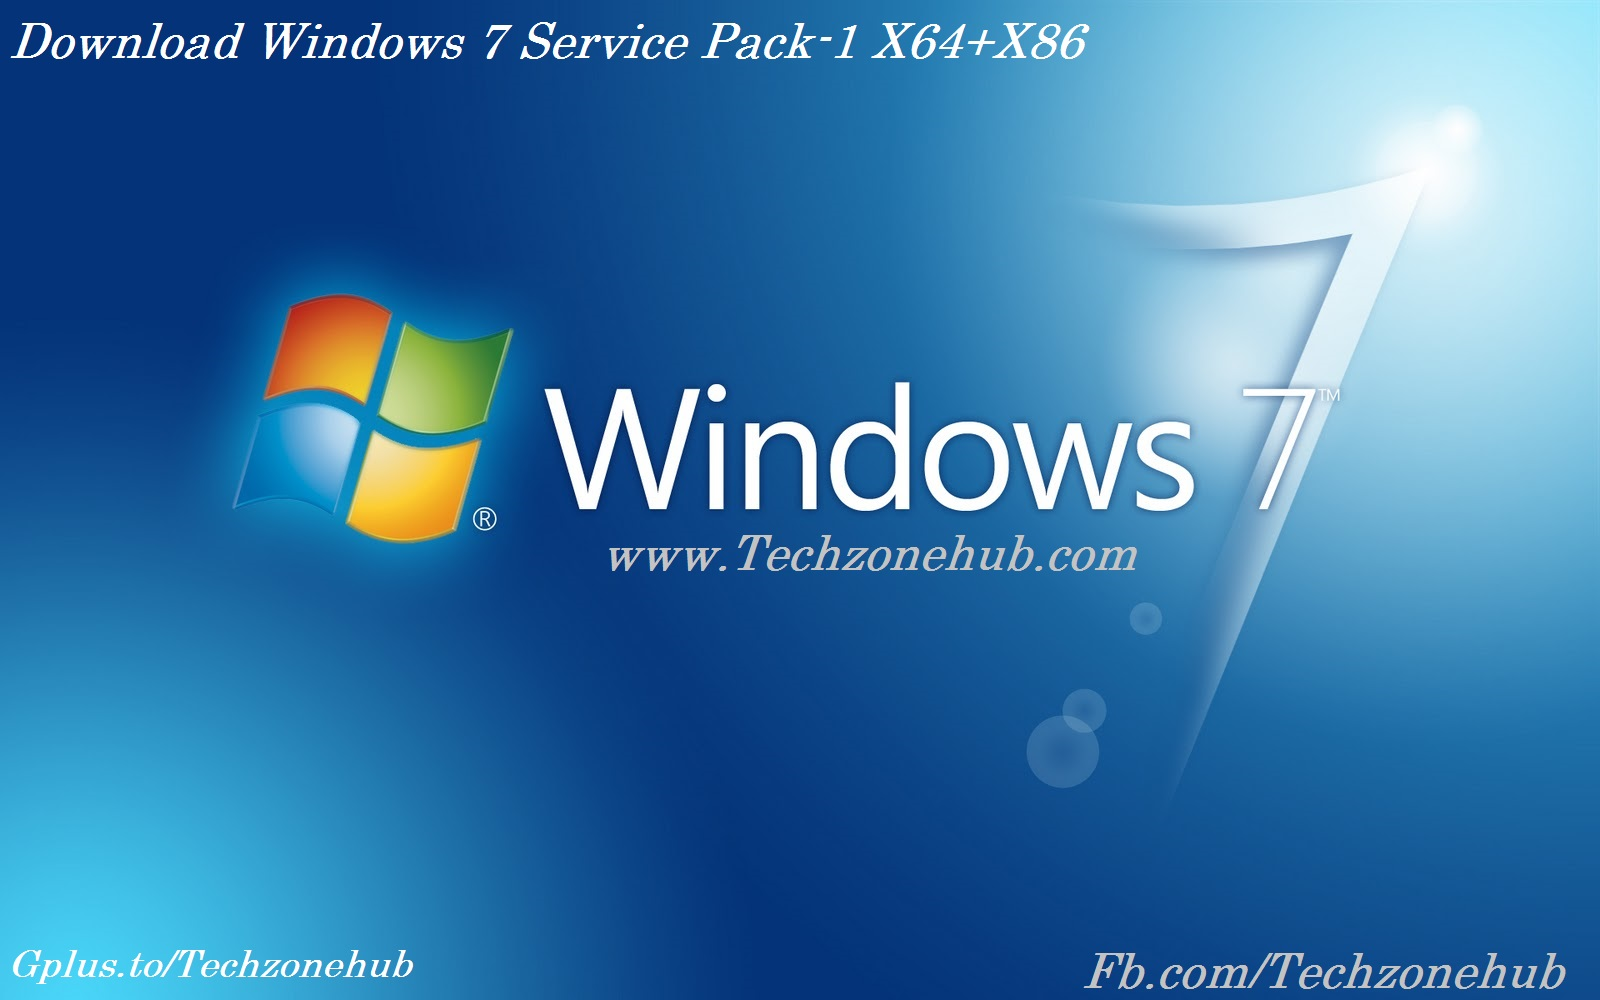 telecharger windows 7 service pack 3 64 bits